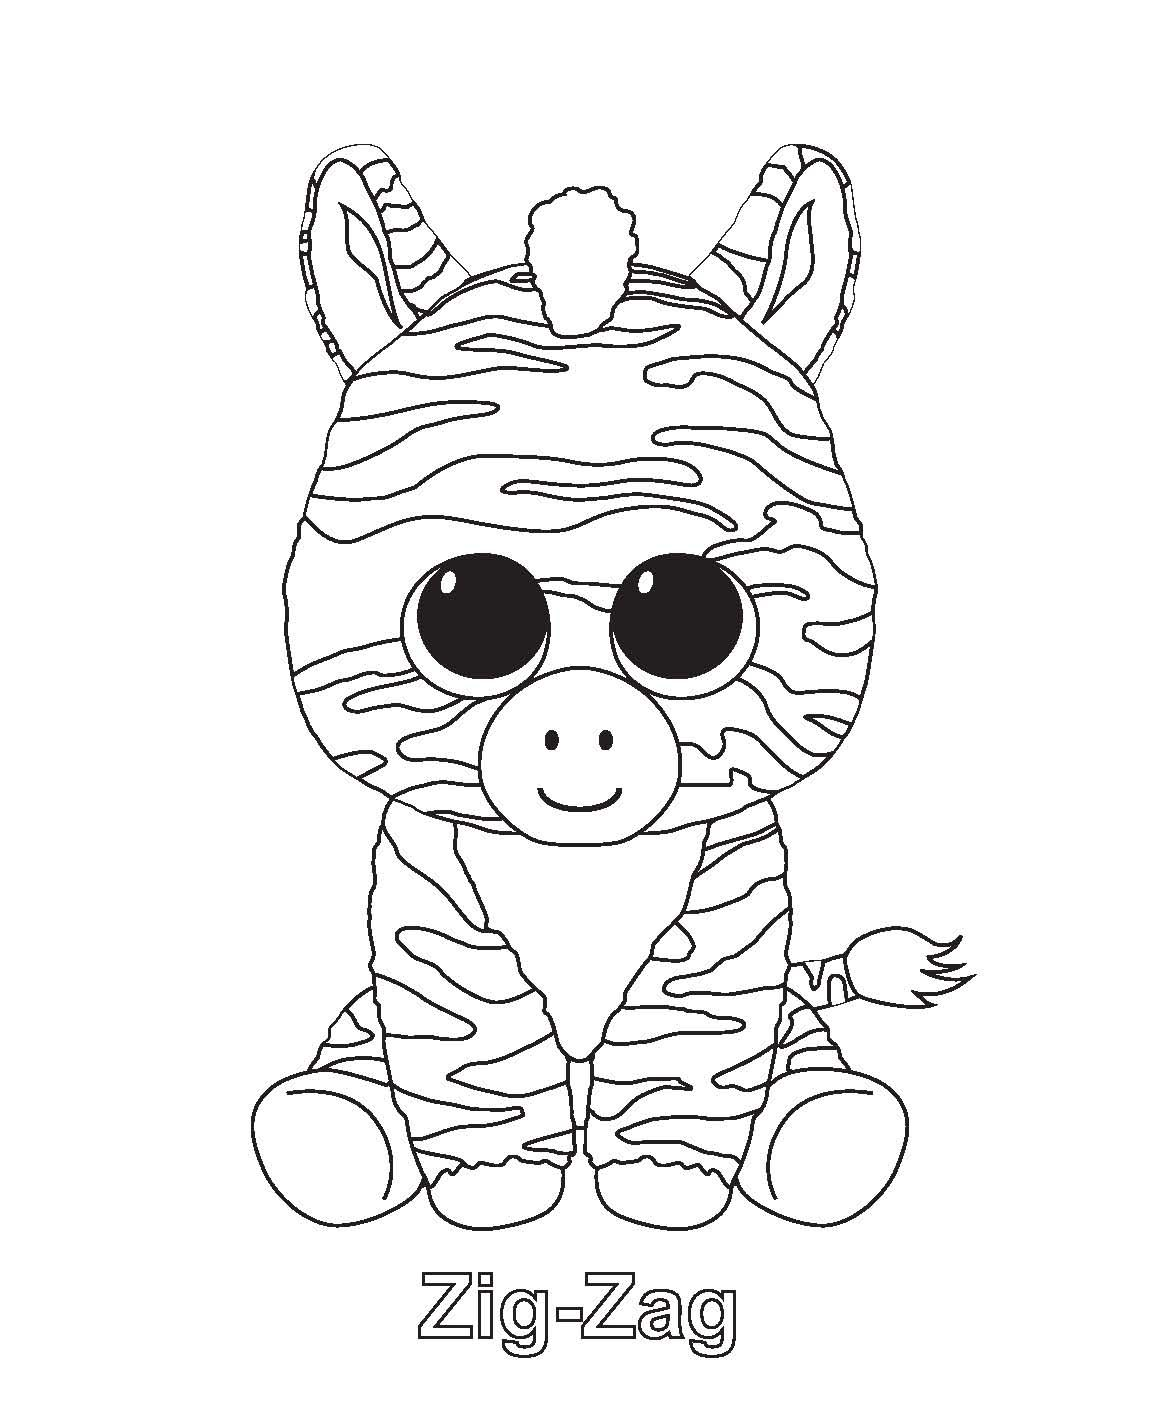 boo boo coloring pages - photo#14